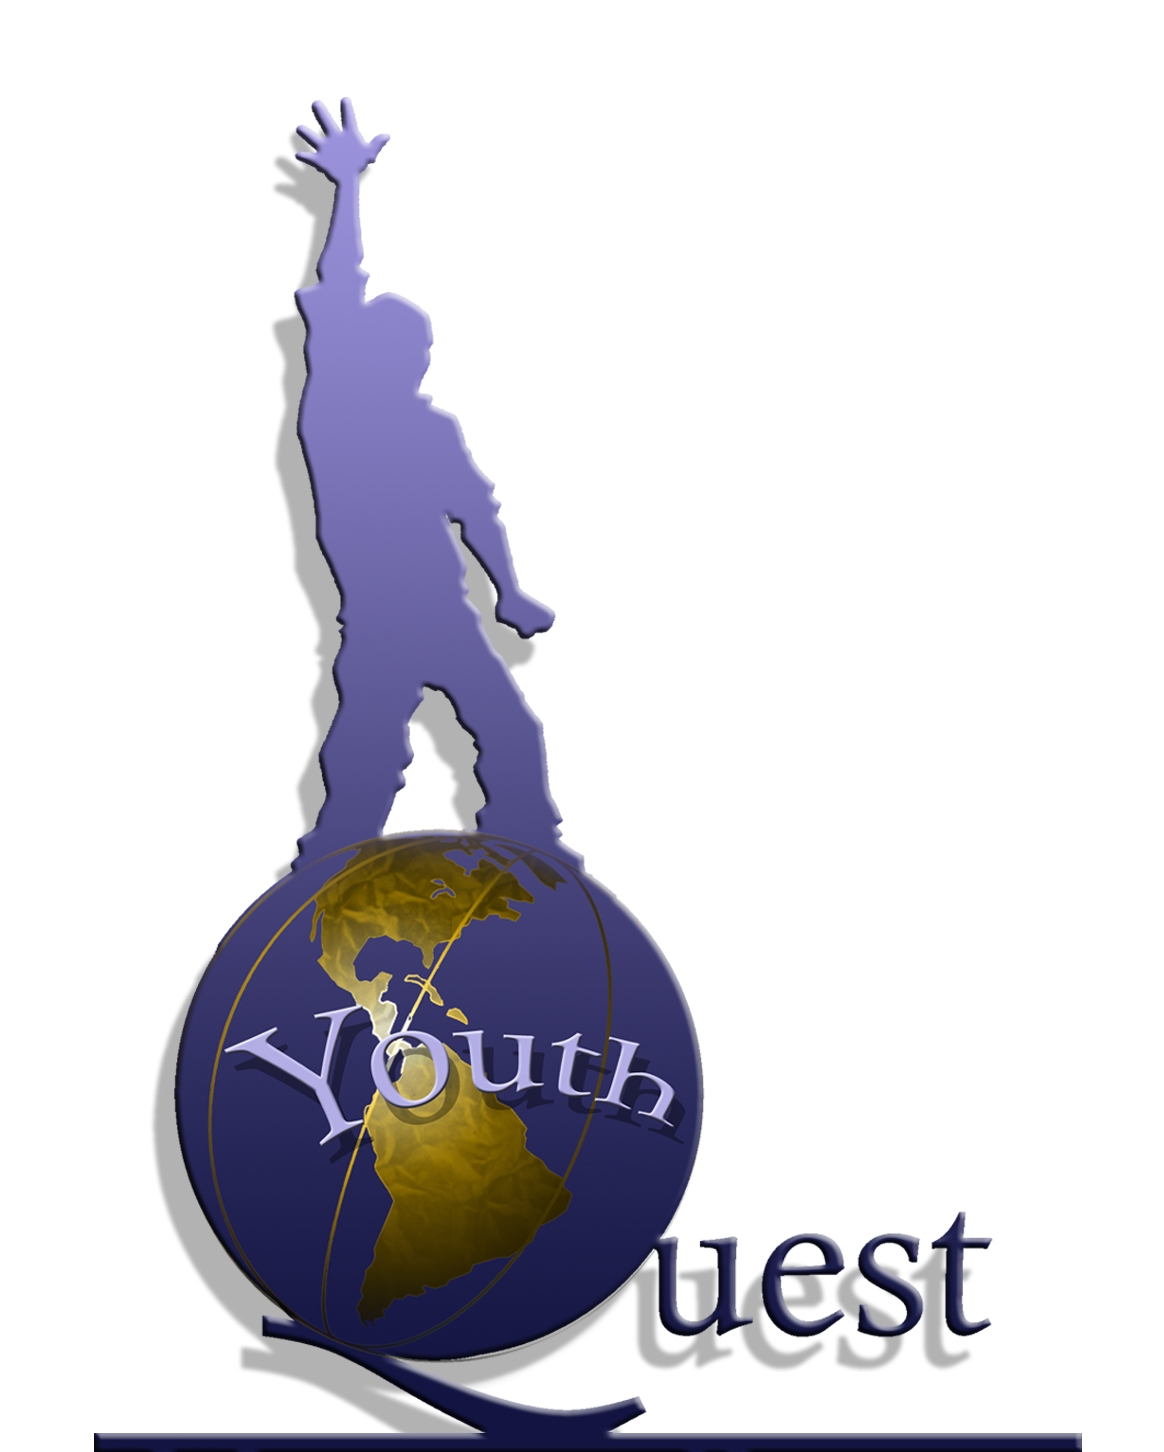 Youth Quest logo